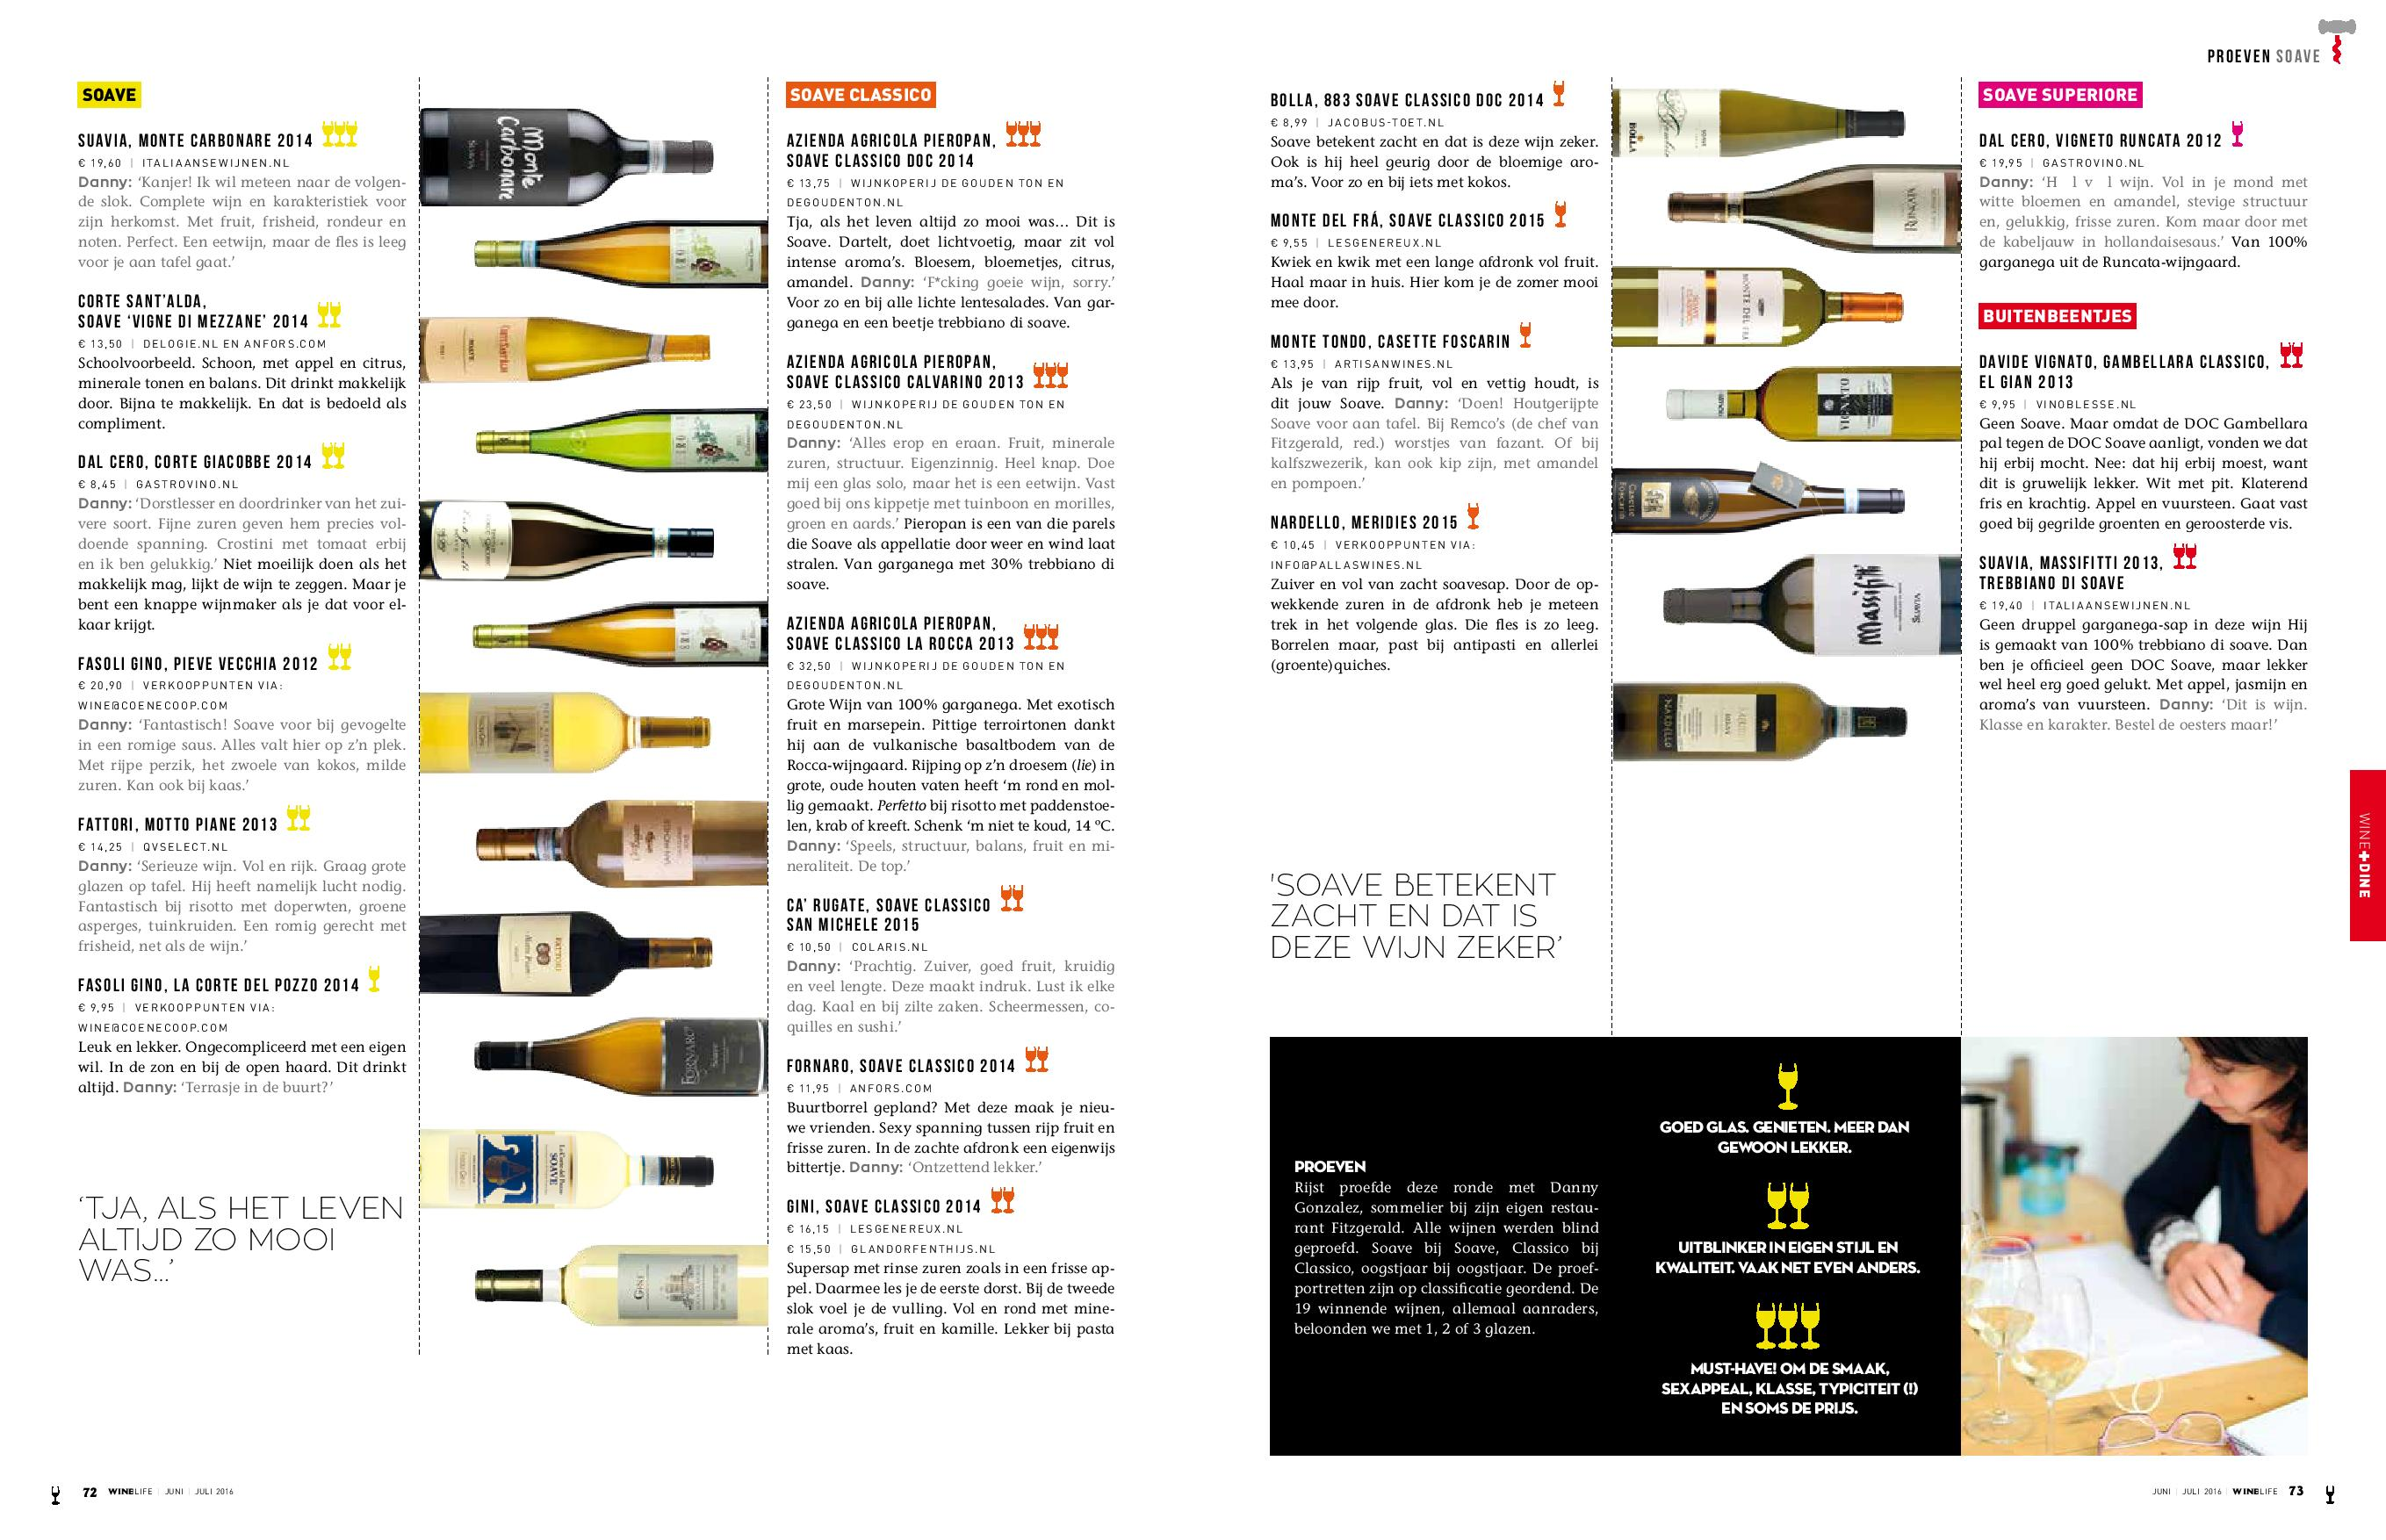 070-073_WL42_RuitRijst-page-002